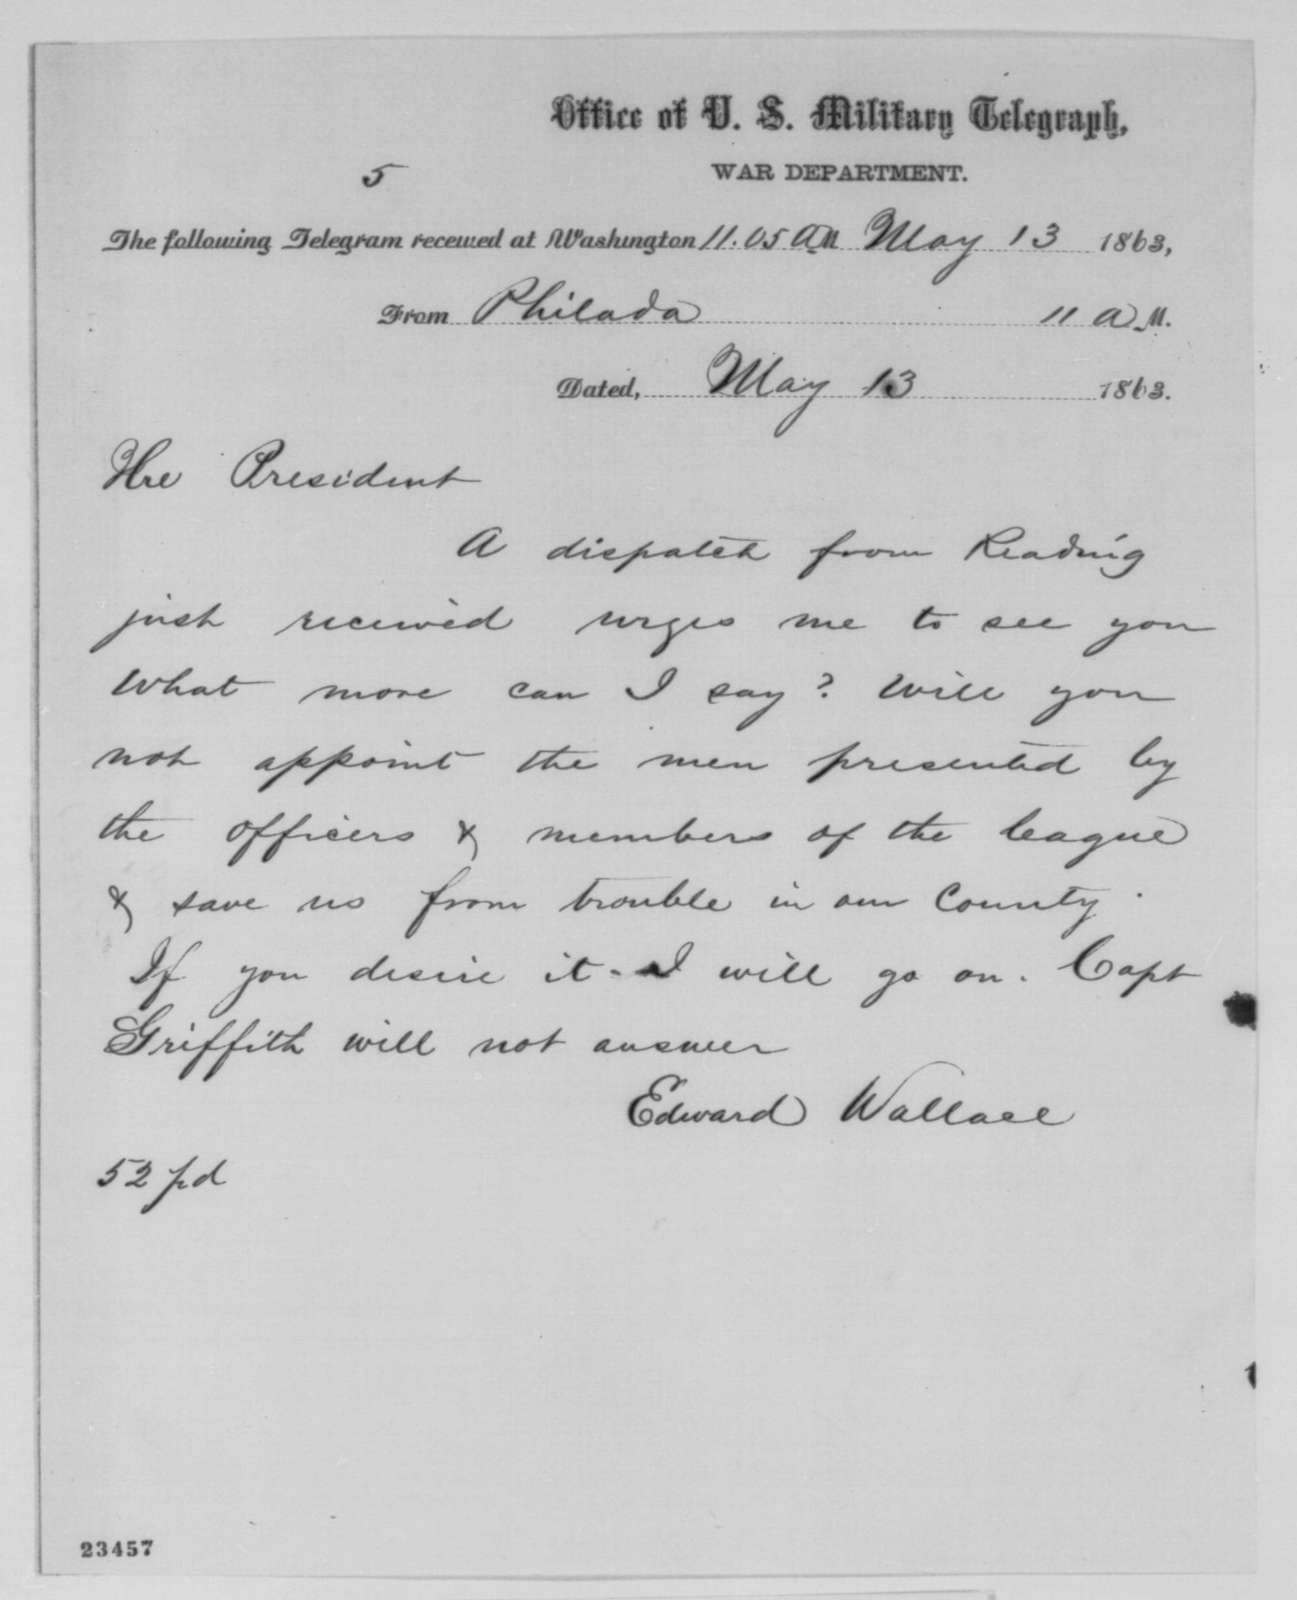 Edward Wallace to Abraham Lincoln, Wednesday, May 13, 1863  (Telegram concerning Pennsylvania appointments)